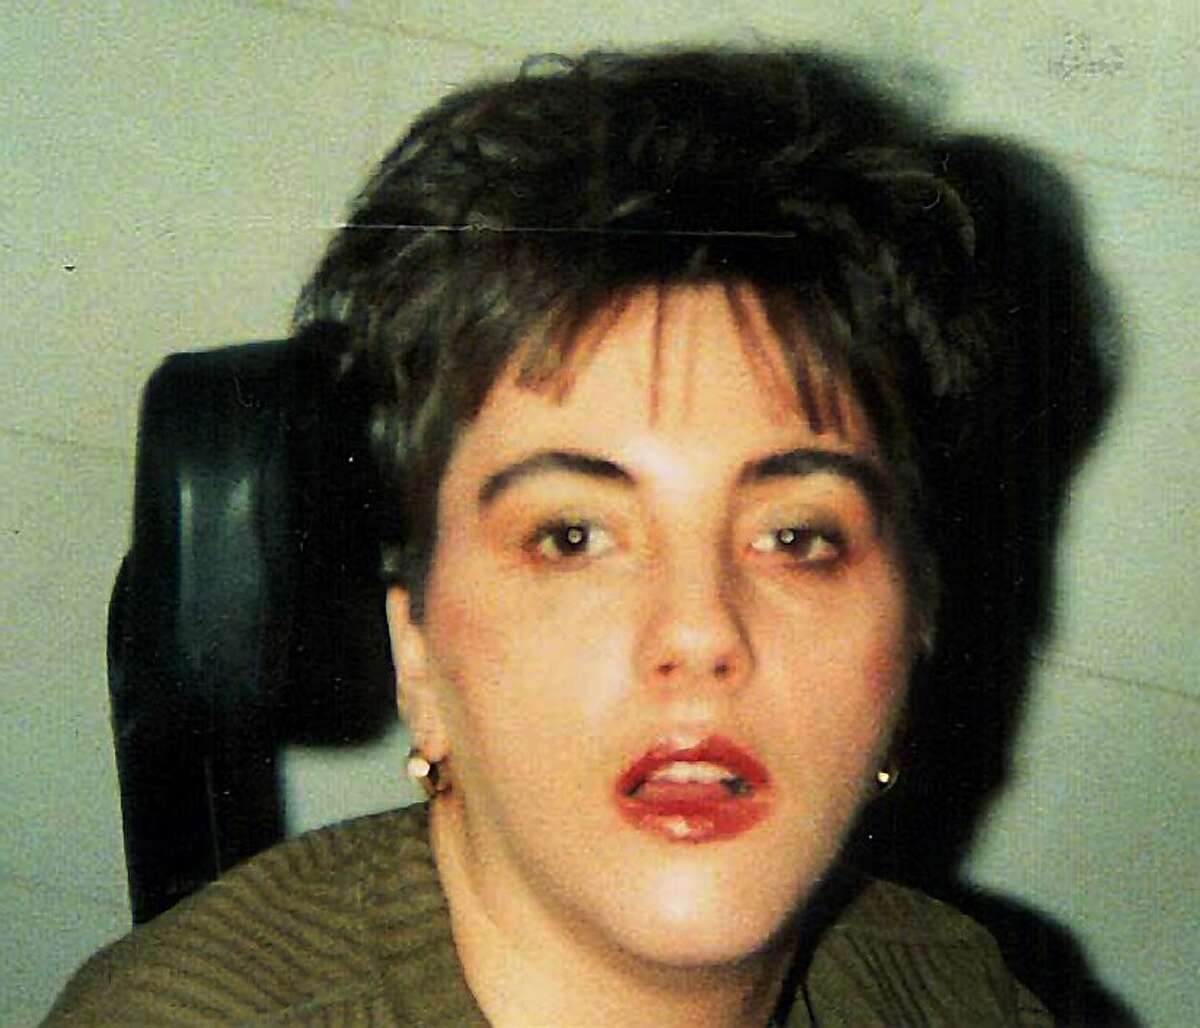 **FILE** Terri Schiavo is shown in this undated Schindler family photo taken shortly after she had a heart attack in 1990. The medical examiner's office plans to release its autopsy report Wednesday on Terri Schiavo _ findings her family hopes will shed light on the cause of the collapse that left her severely brain-damaged 15 years ago. Schiavo, 41, died March 31, nearly two weeks after the feeding tube that had kept her alive was removed under a court order obtained by her husband, Michael Schiavo. (AP Photo/Schindler Family Photo, File) **NO SALES** Ran on: 06-16-2005 Dr. Jon Thogmartin (right) discusses the results of the autopsy performed on Terri Schiavo as Dr. Stephen Nelson looks on.